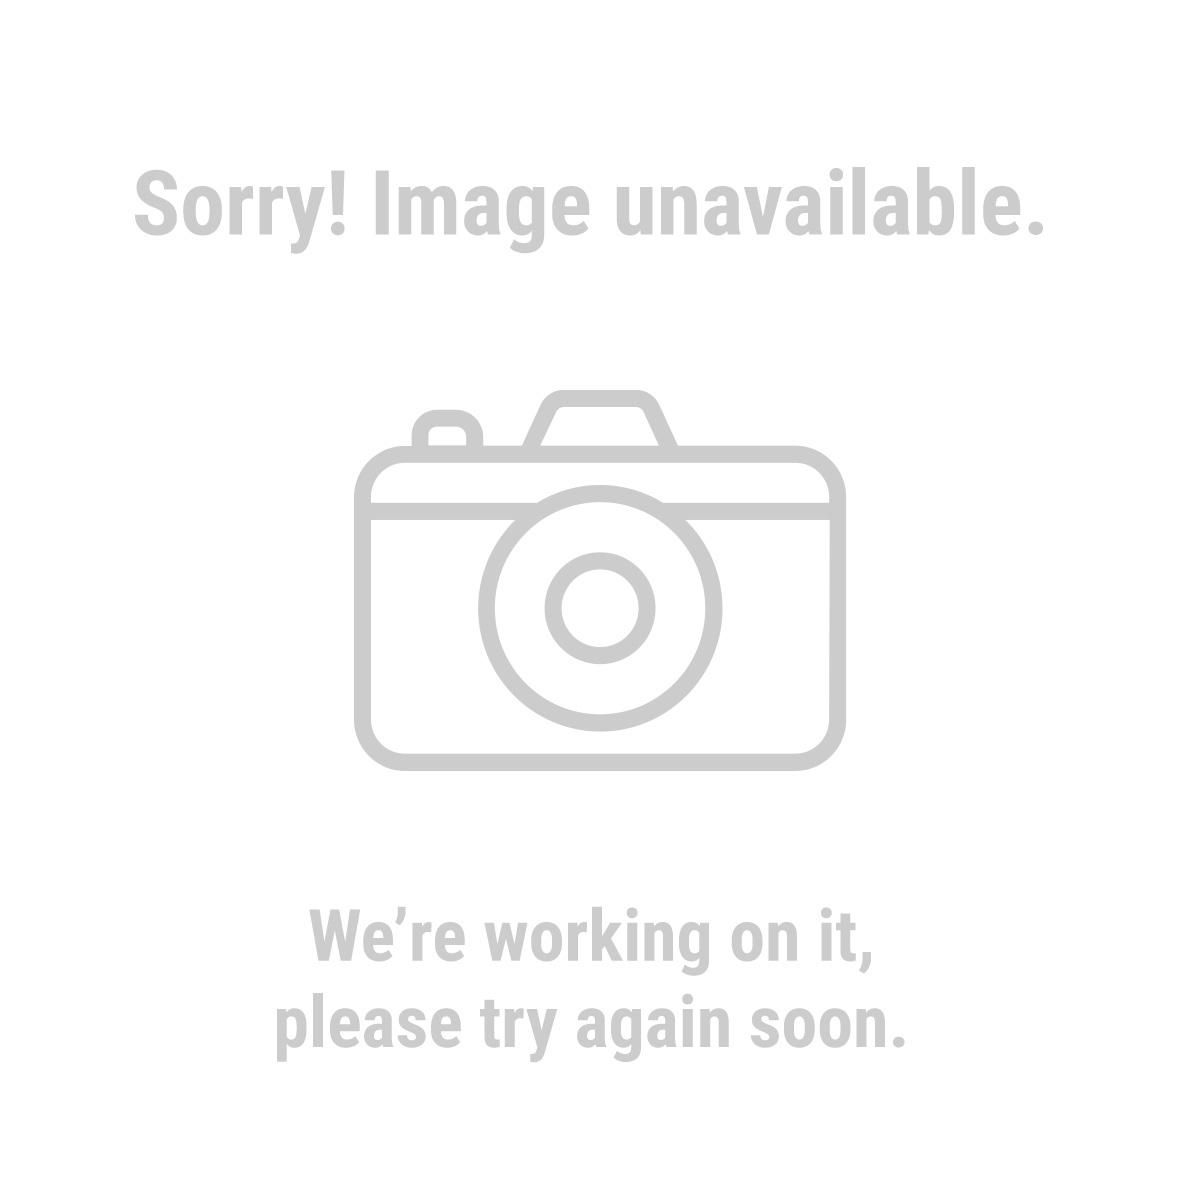 GERSON 67727 P95 Maintenance-Free Dual Cartridge Respirator - Large